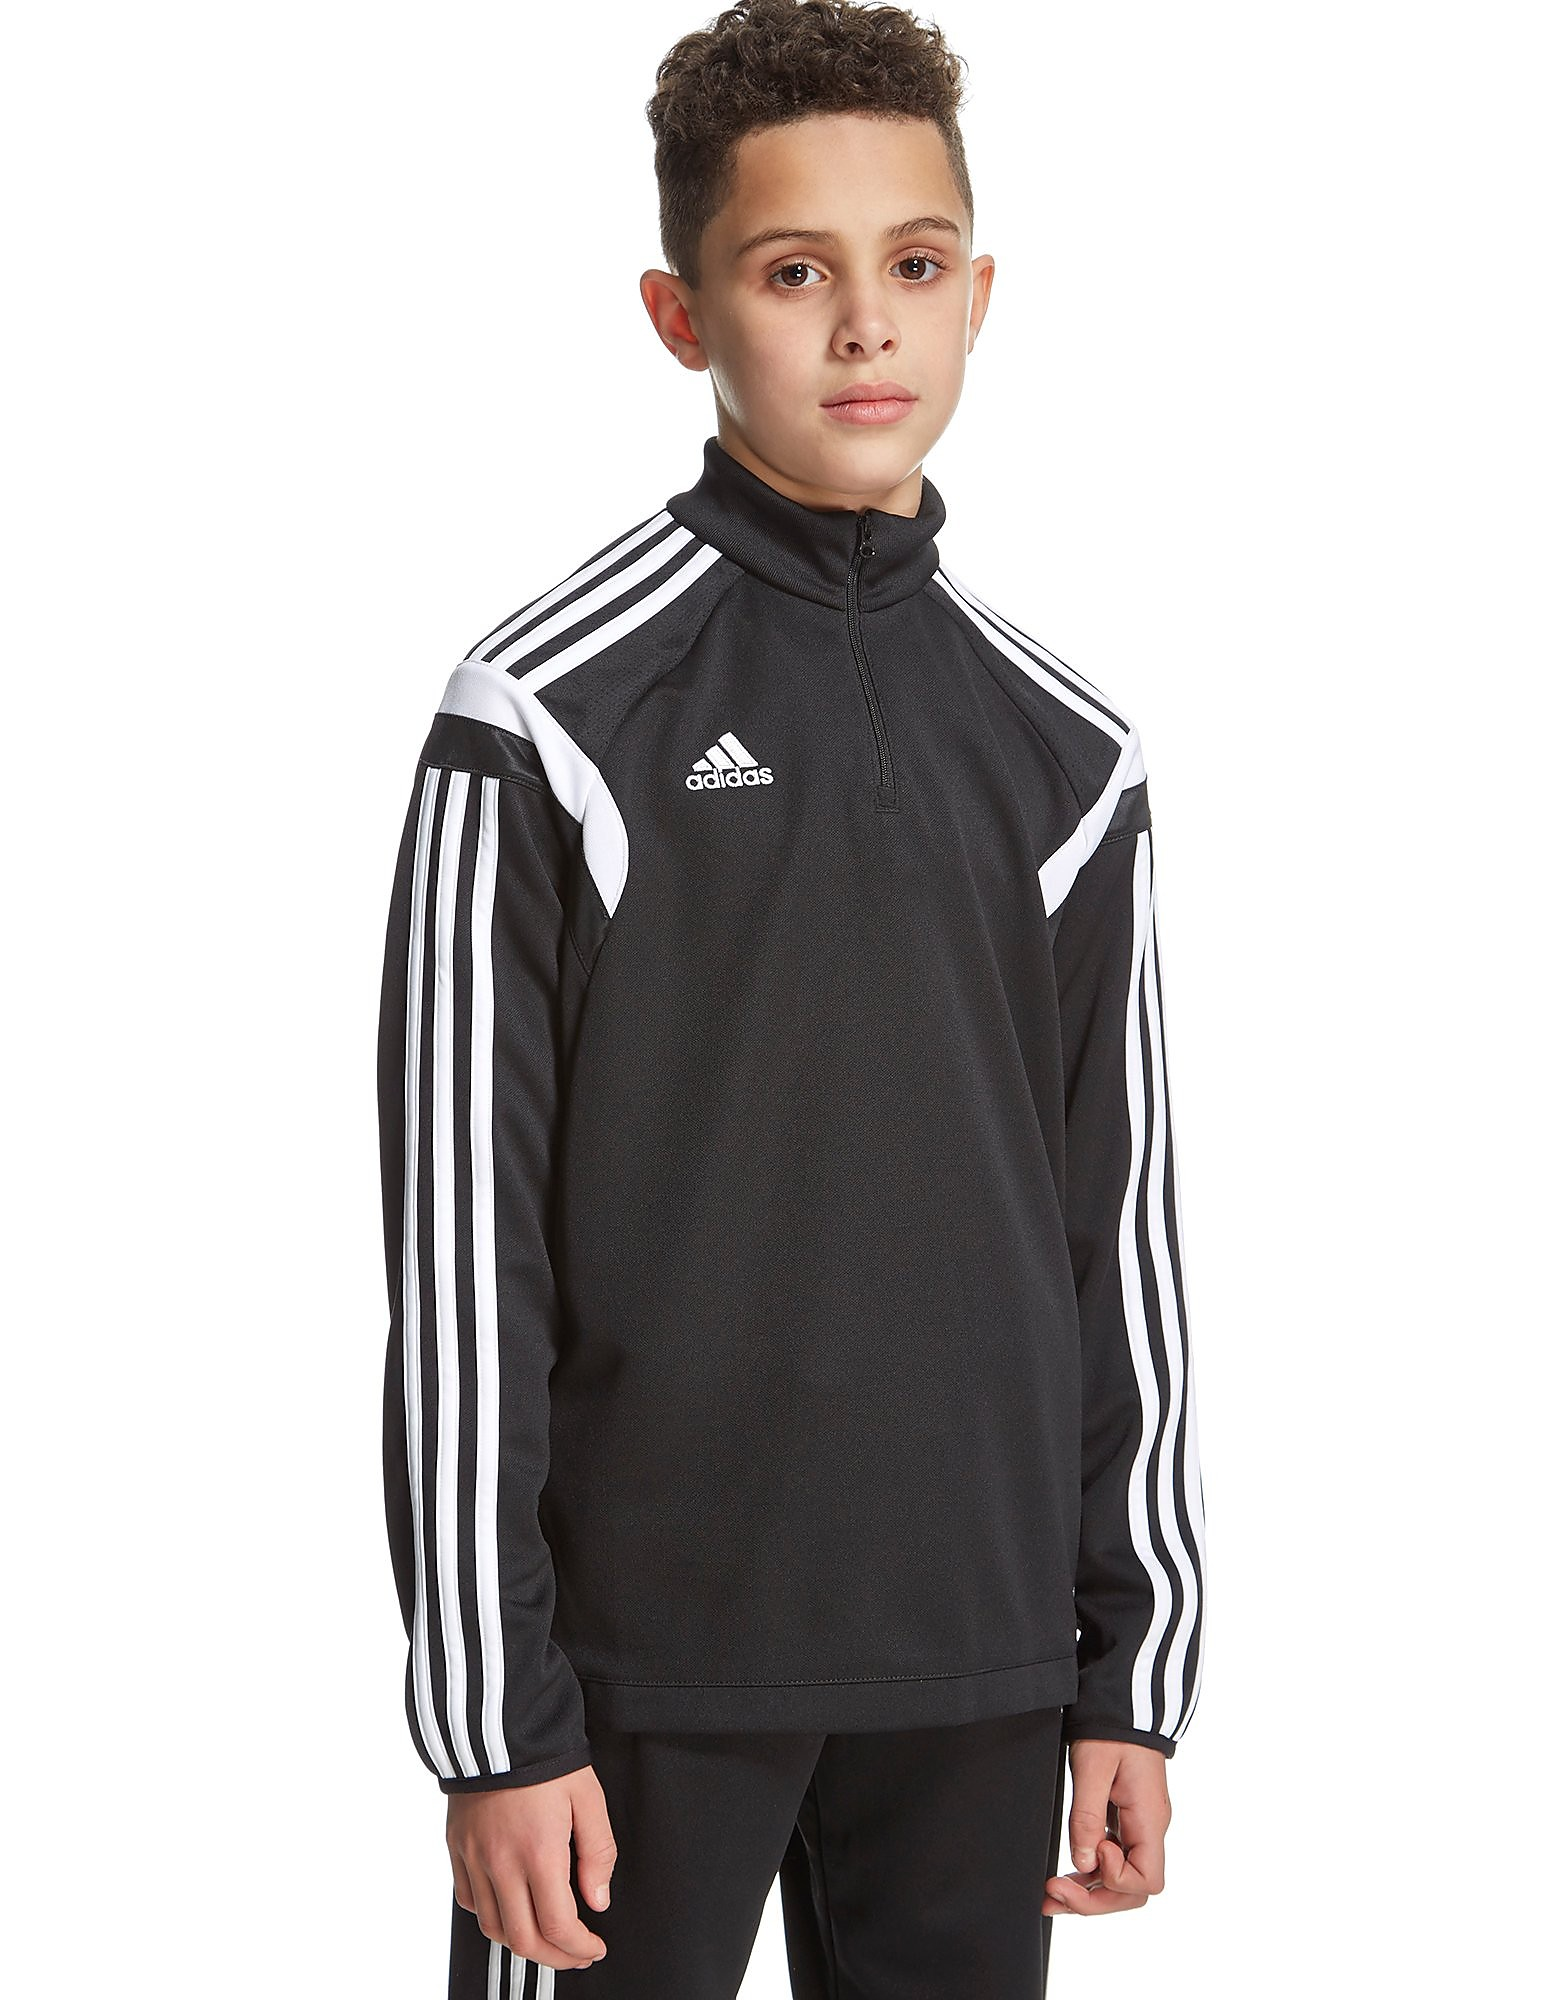 adidas Condivo 14 Training Top Junior